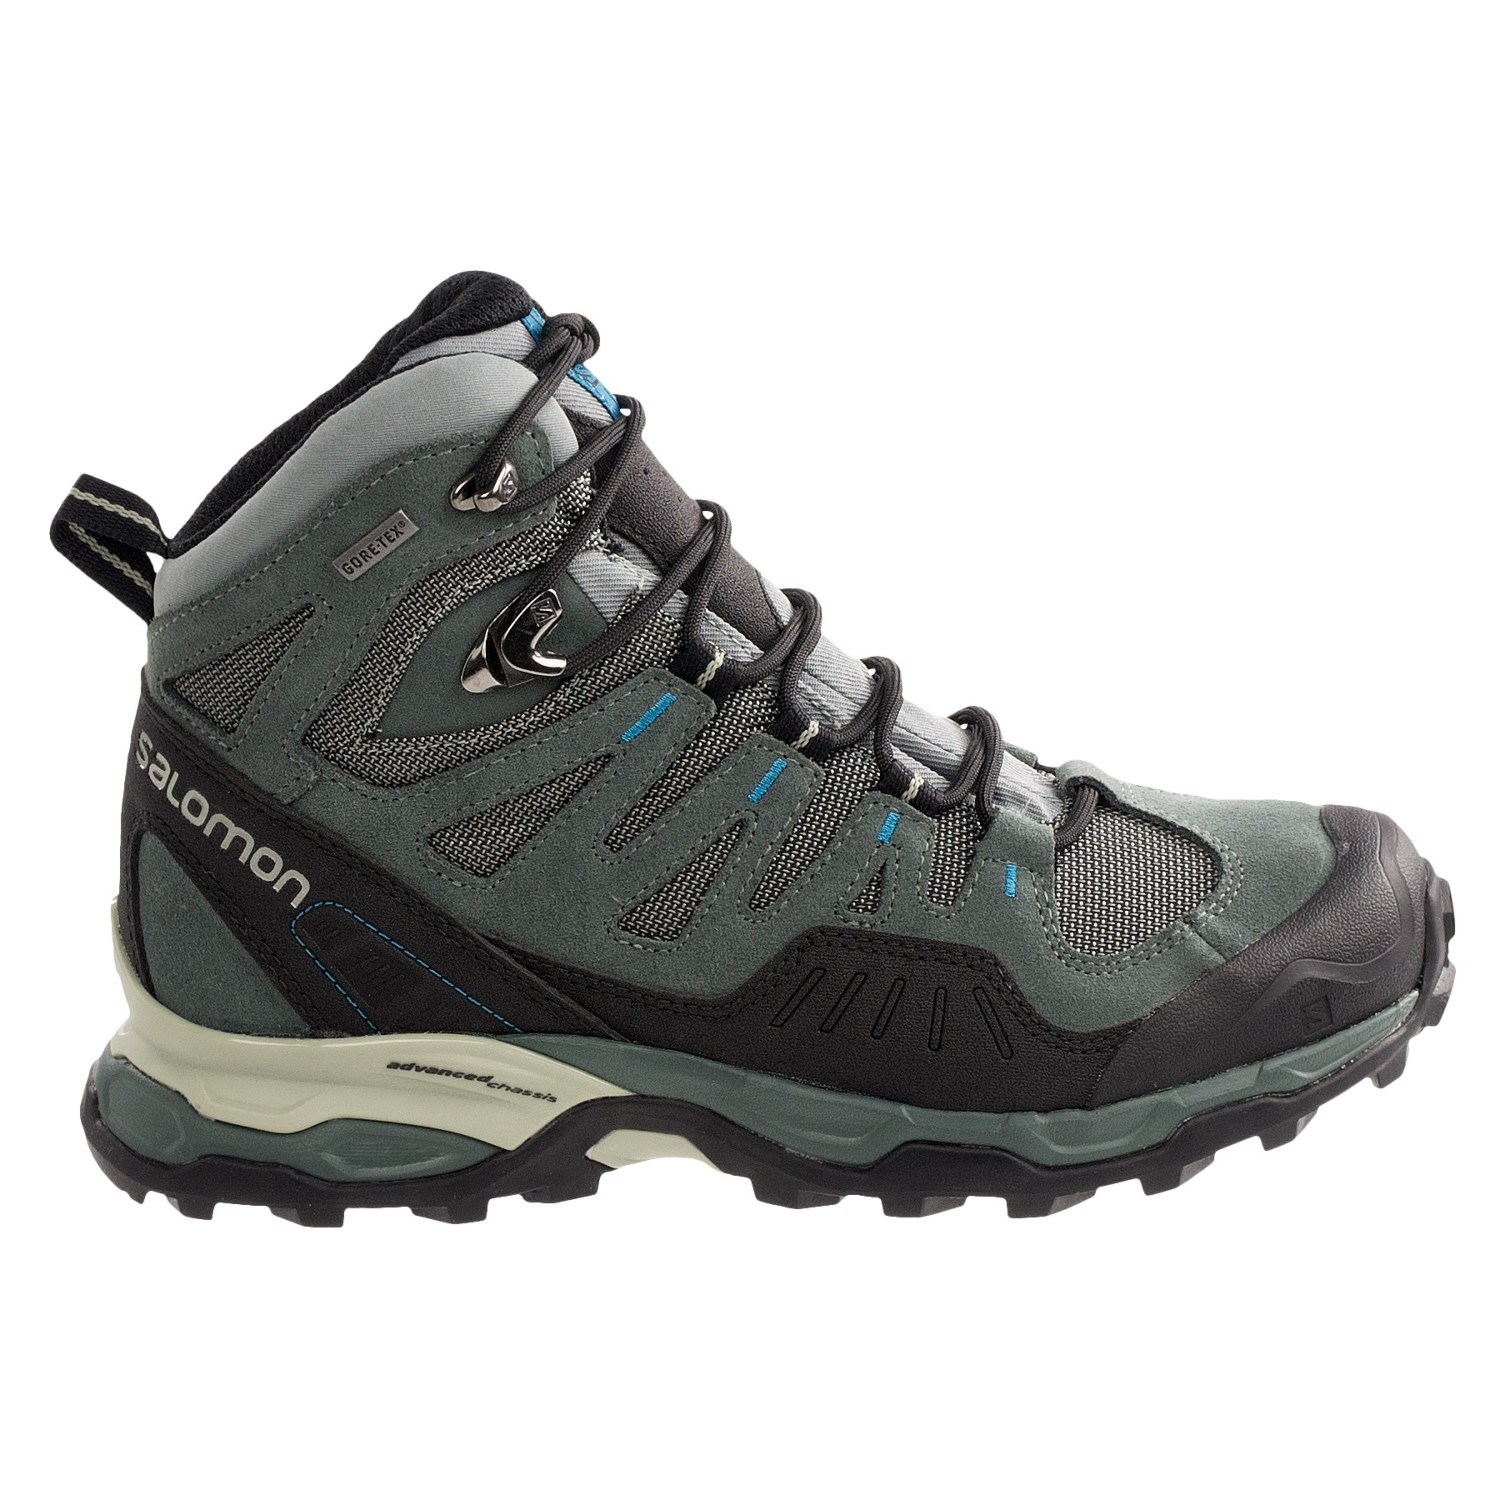 Salomon B52 Ts Gtx Winter Boots - Men s  d51ed38d80f80